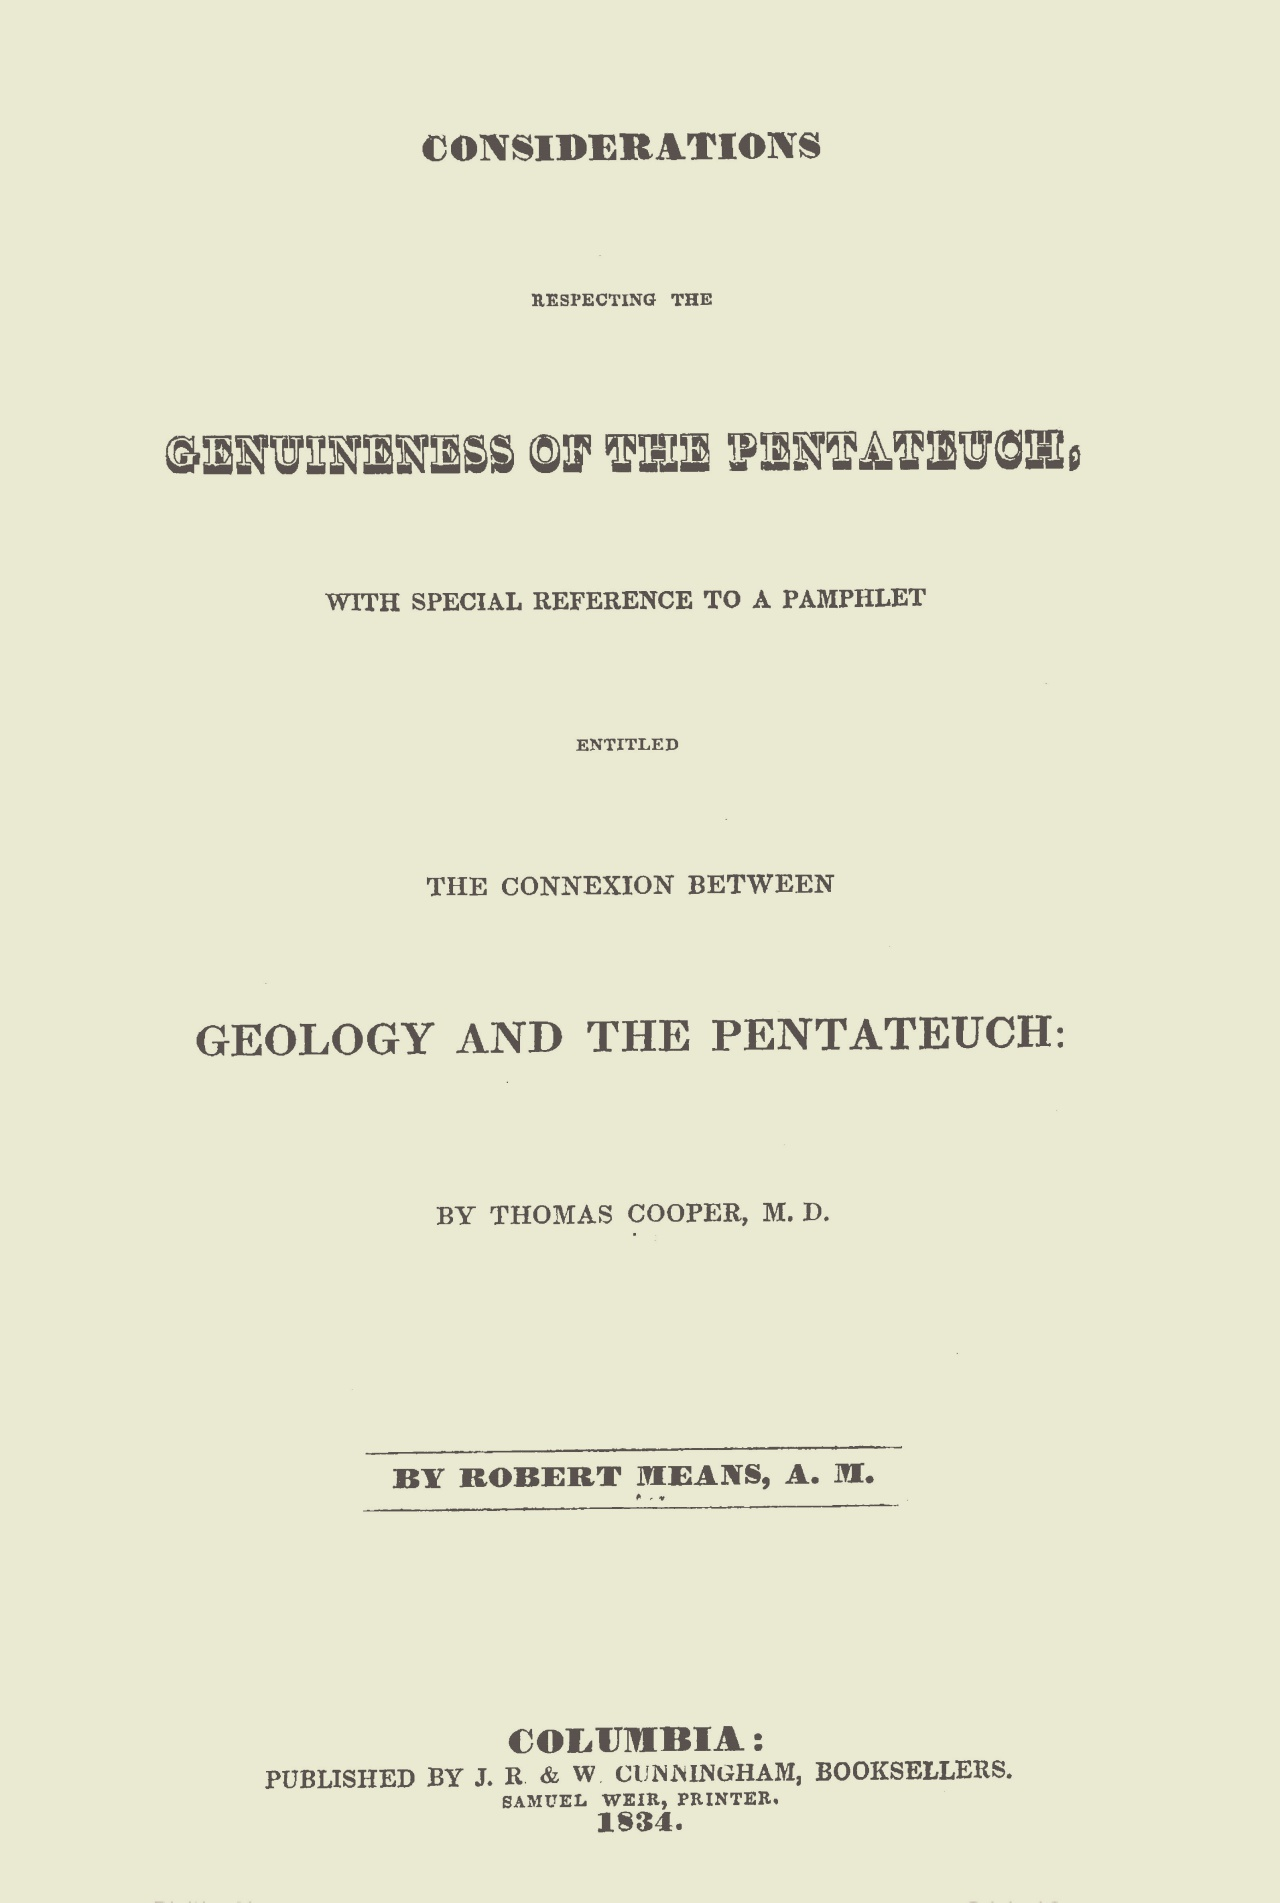 Means, Robert, Considerations Respecting the Genuineness of the Pentateuch Title Page.jpg